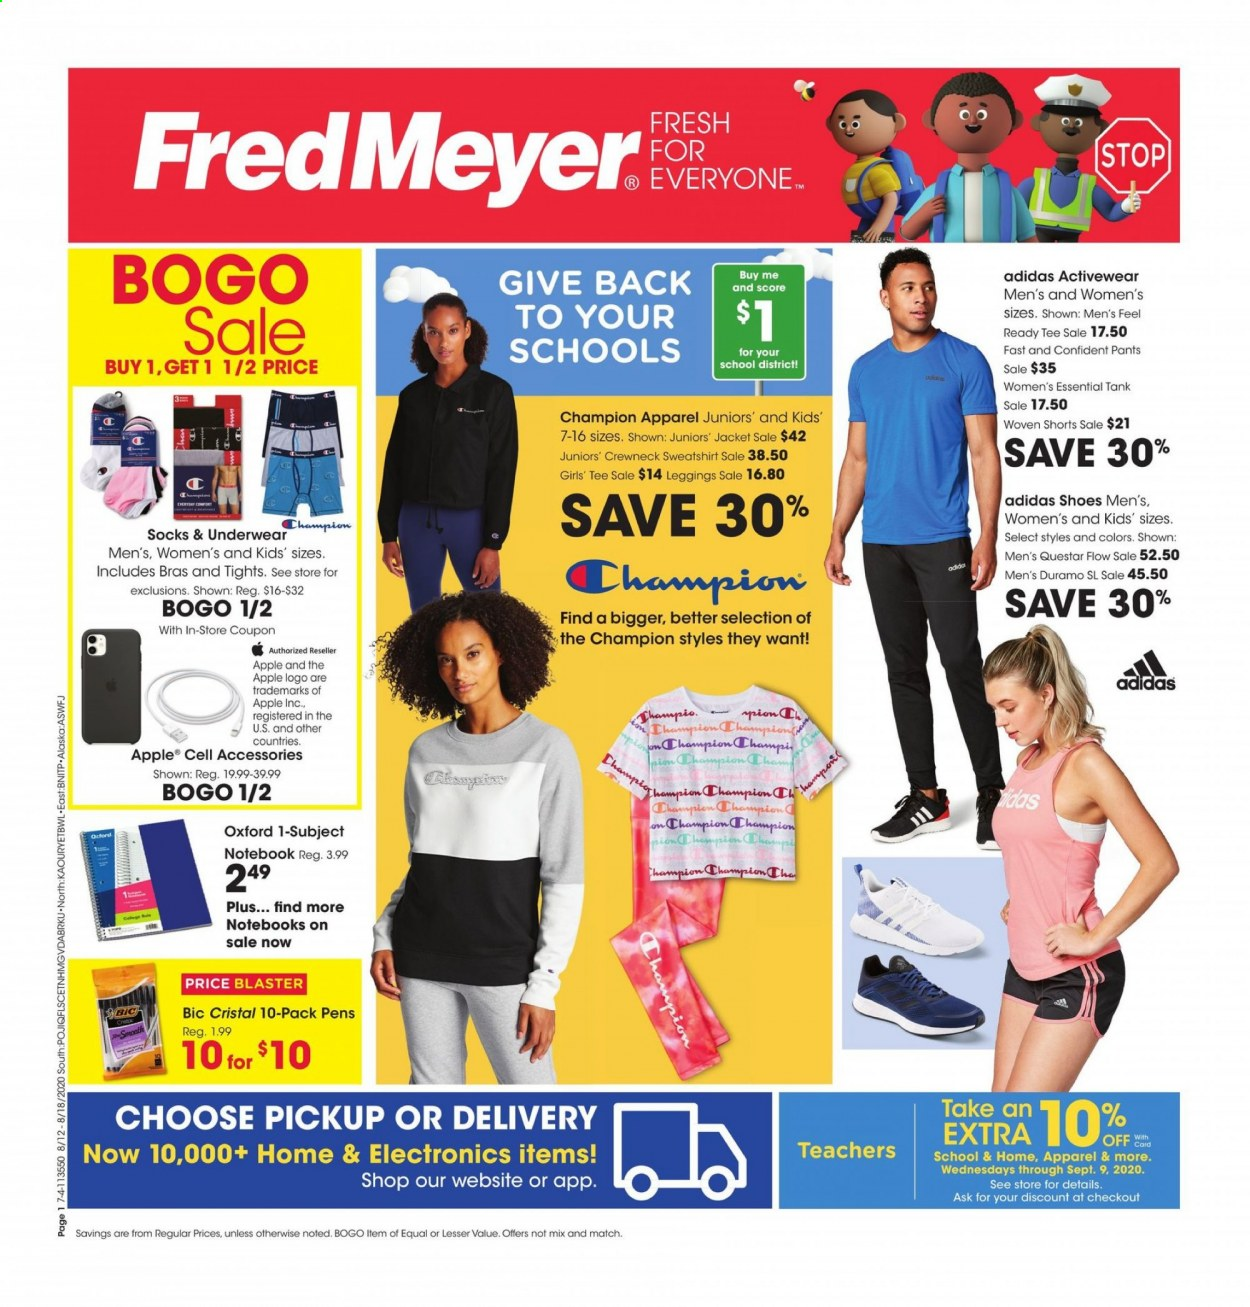 Fred Meyer Flyer - 08.12.2020 - 08.18.2020 - Sales products - adidas, apparel, apples, bic, bra, leggings, shoes, shorts, socks, sweatshirt, tee, tights, underwear, champion, jacket, pants, notebook, blaster, cell accessories, apple. Page 1.